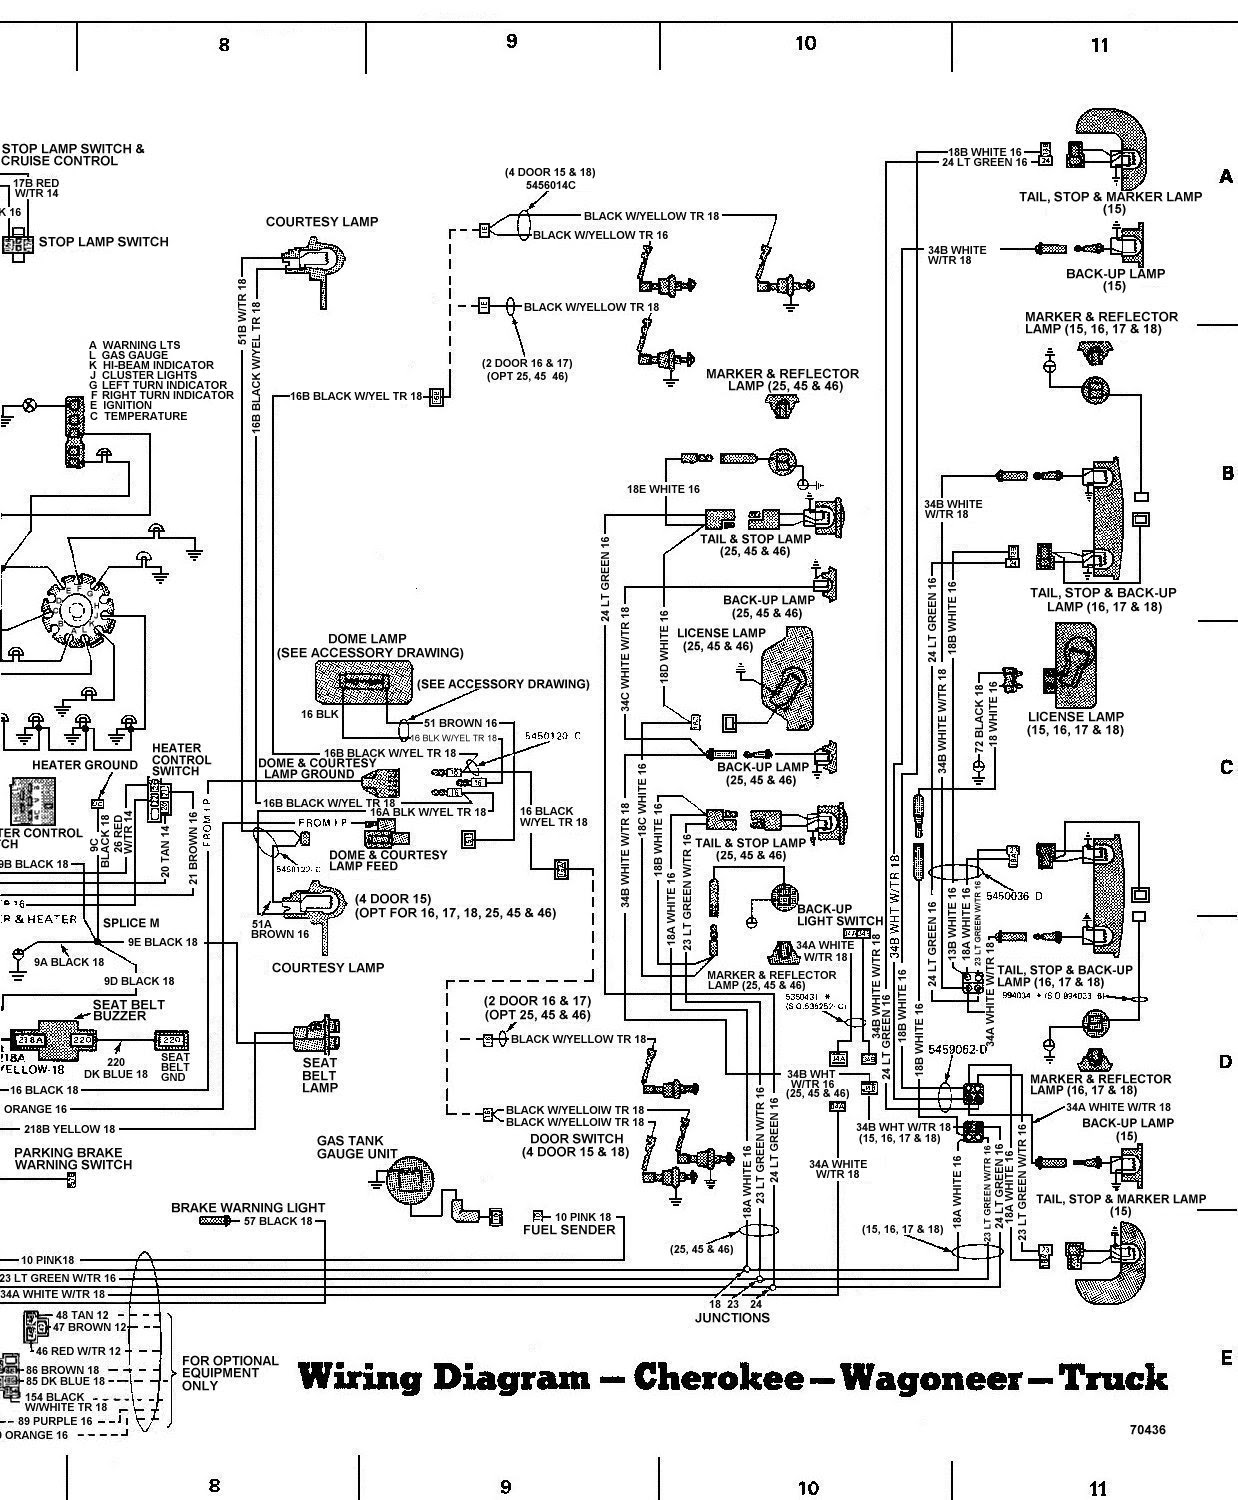 Wiring Diagram Source: 2004 Jeep Grand Cherokee Door ...